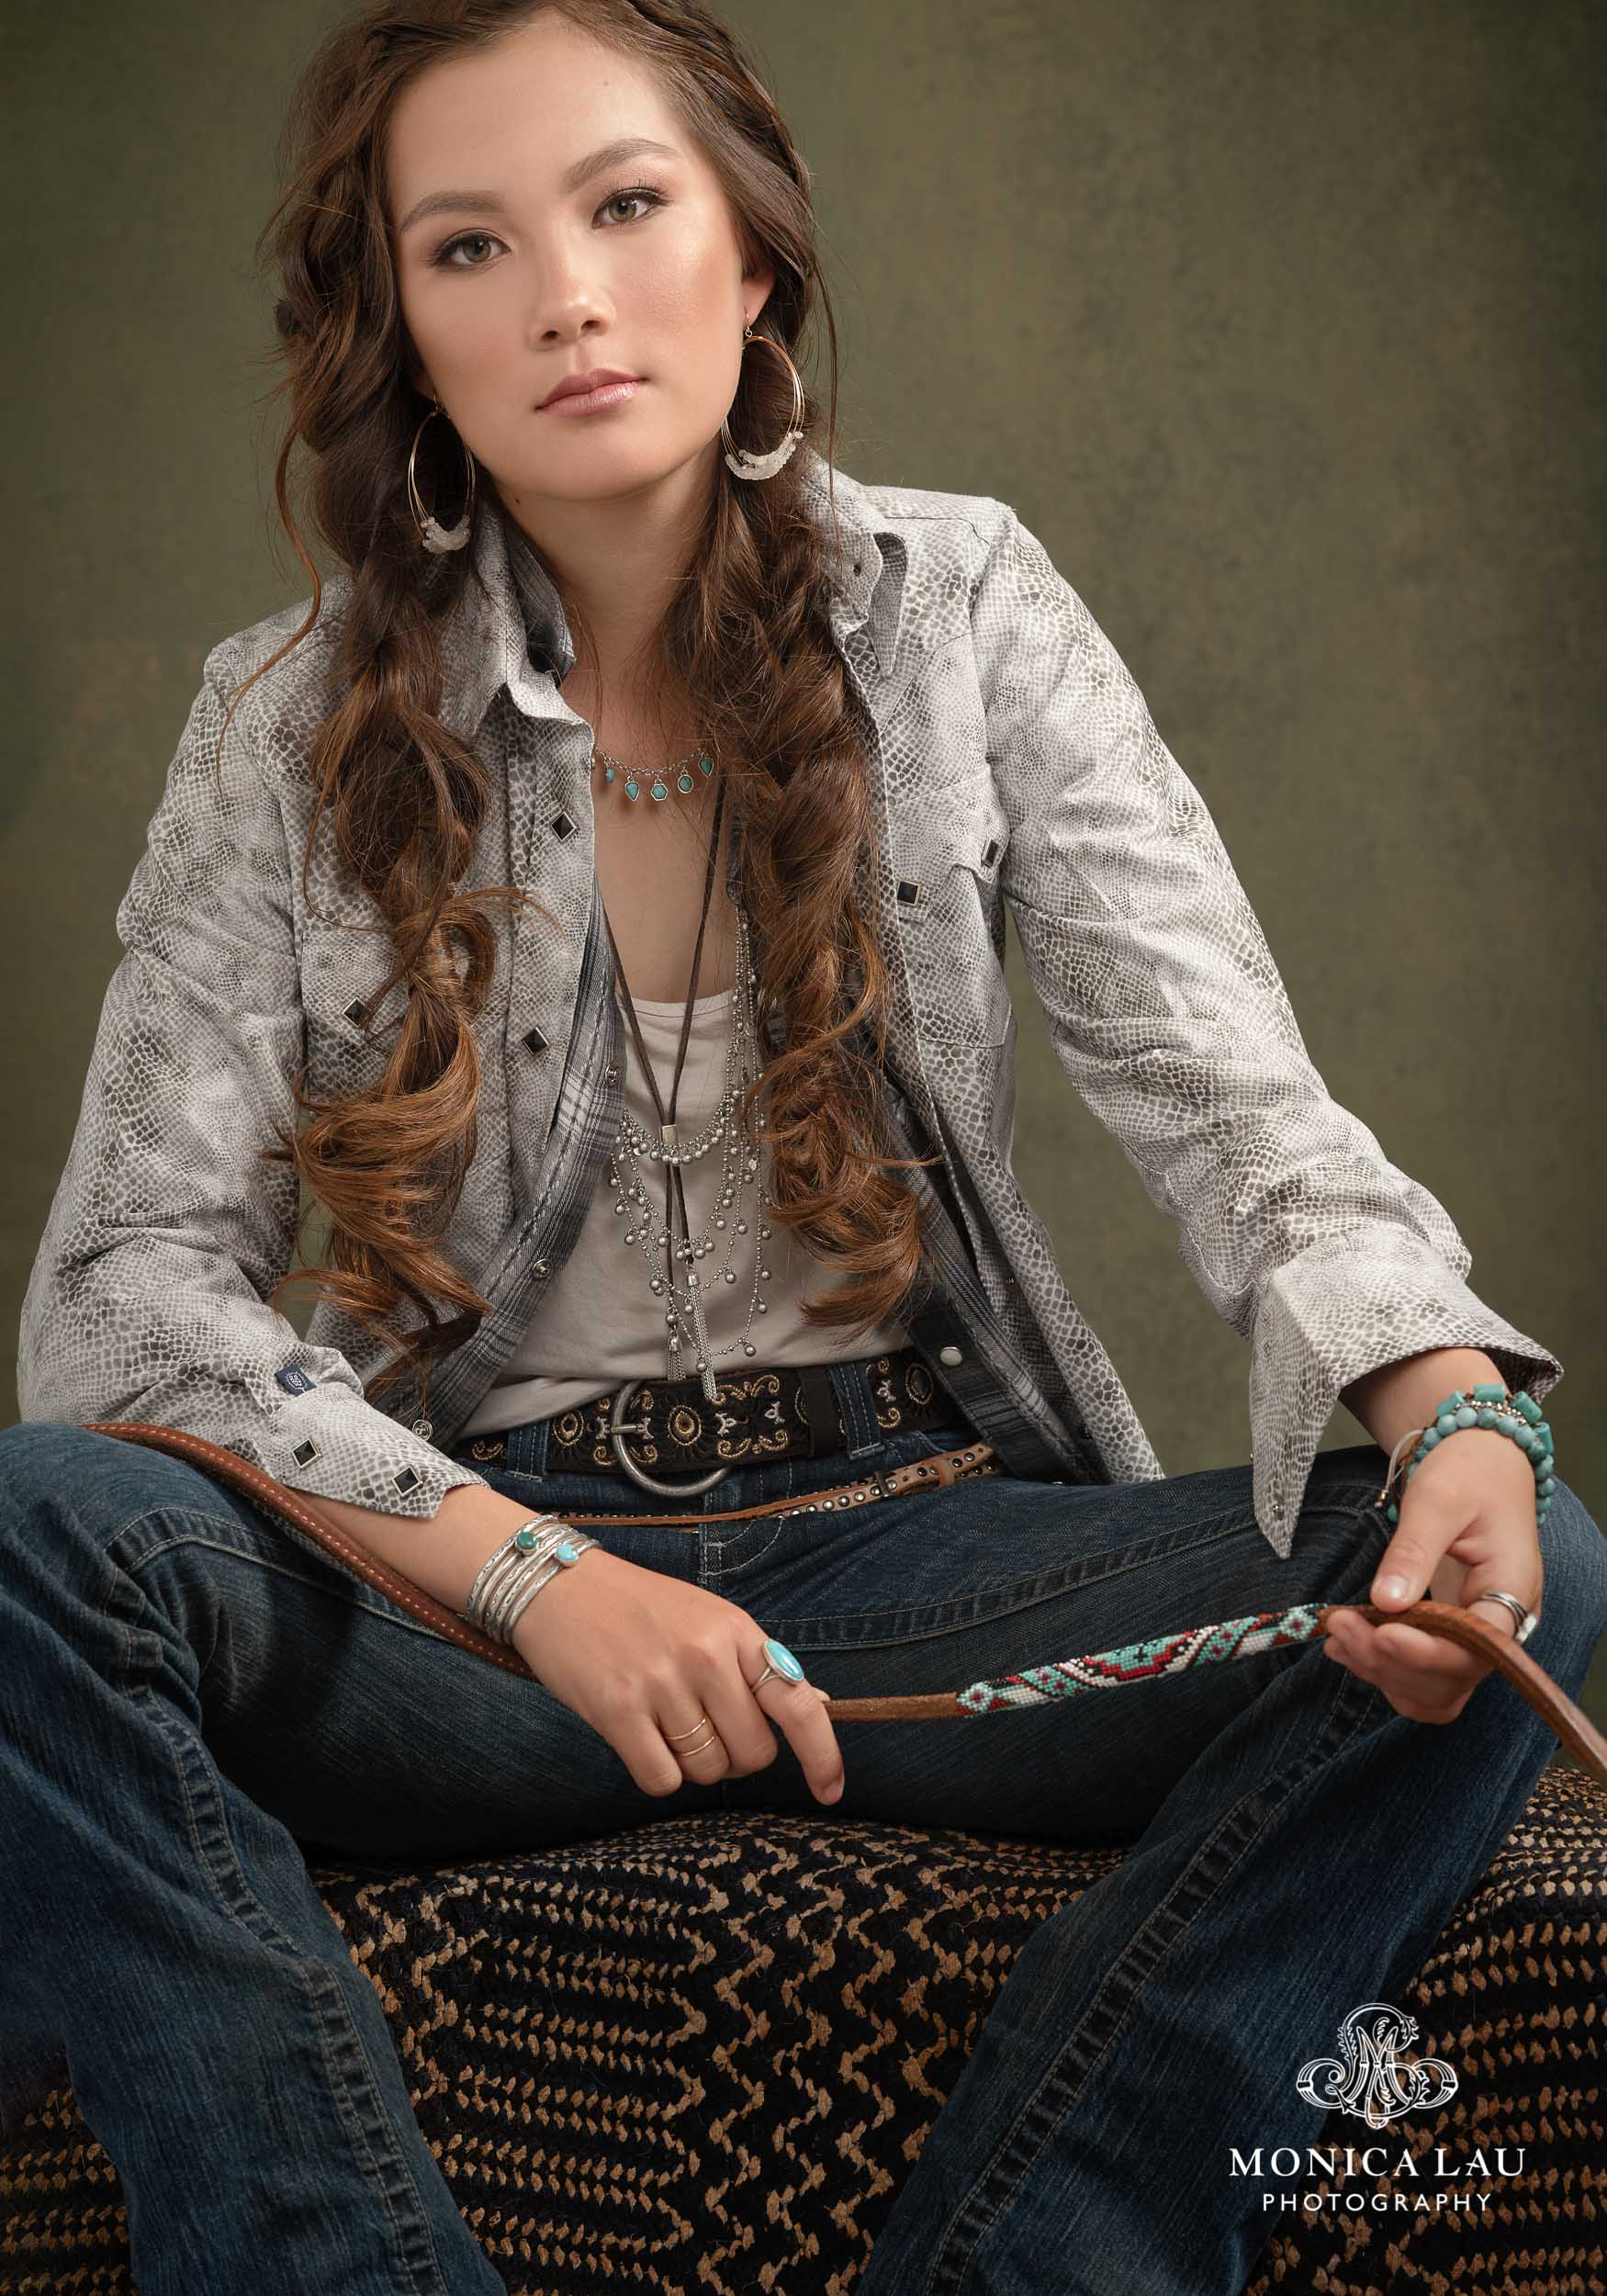 19MonicaLauPhotography-ShelbyWallenCowgirlPortraits0884-2-2.jpg